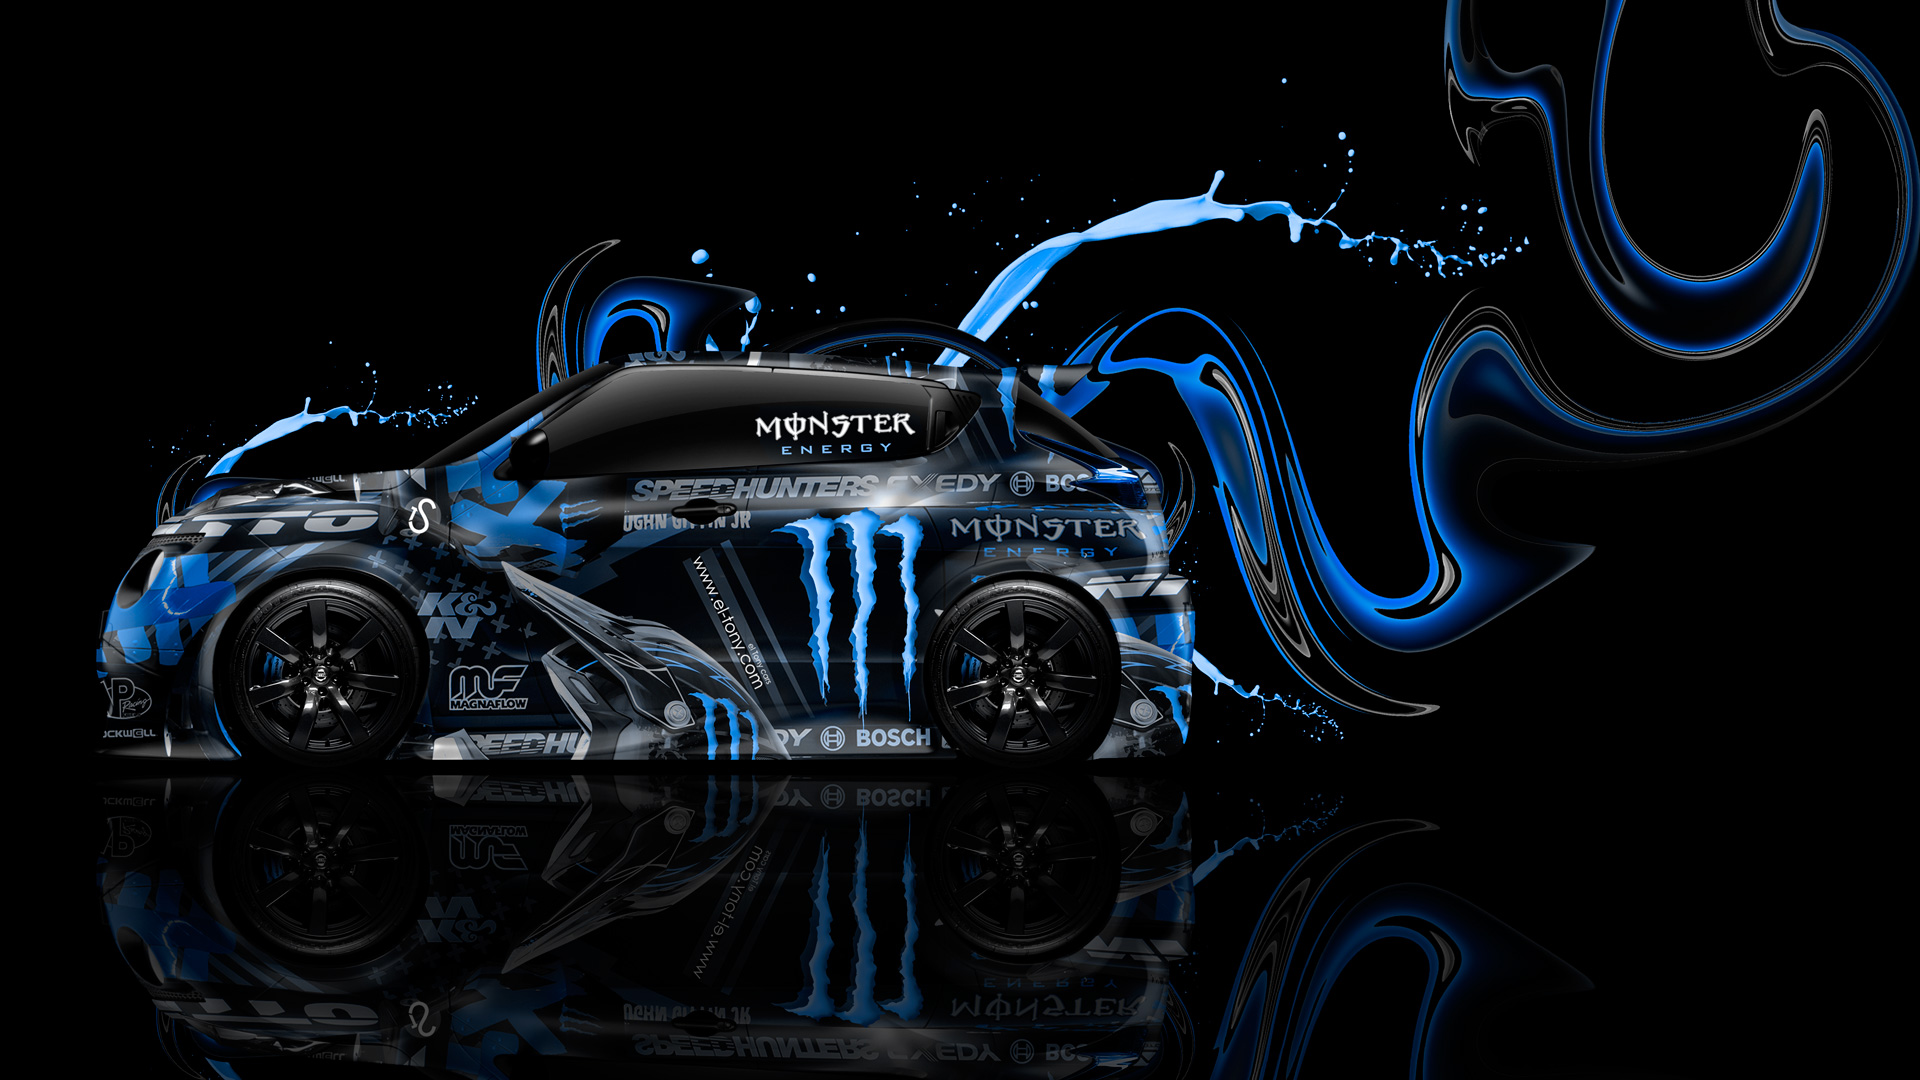 Monster Energy Logo Wallpapers   Wallpaper Cave